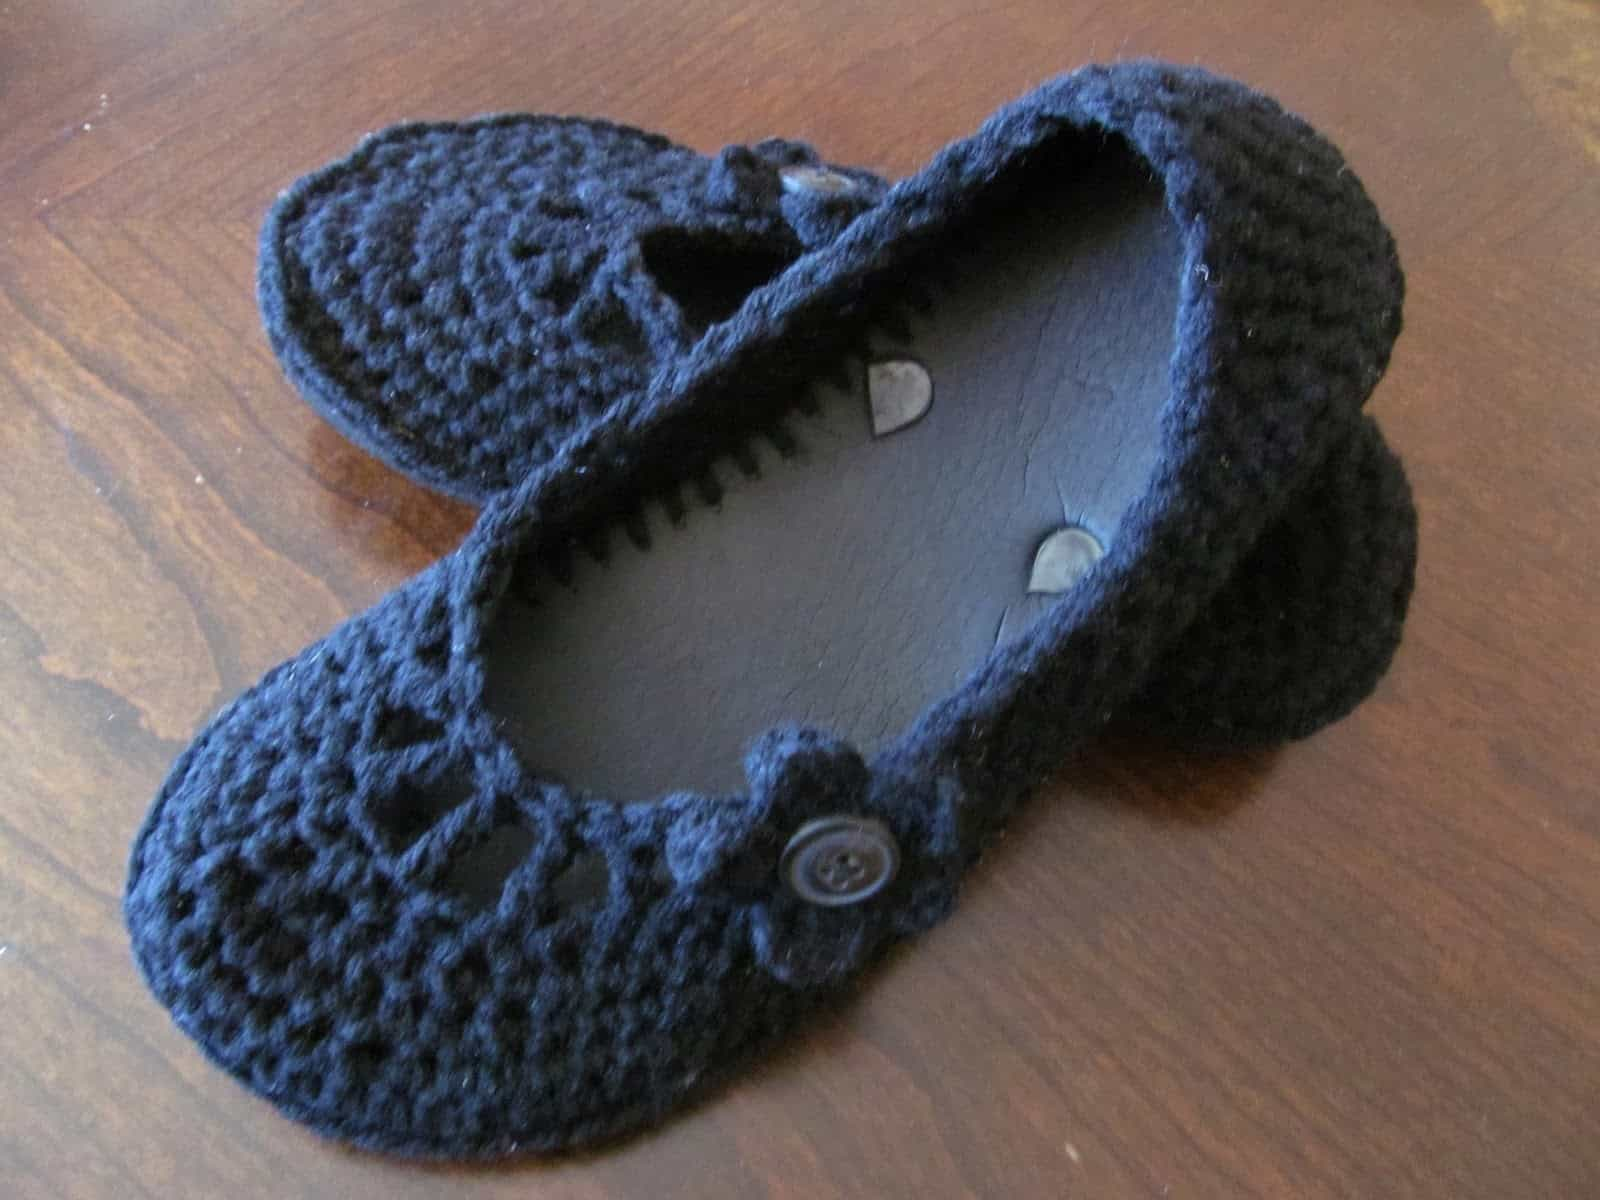 Flip flop flats with buttons